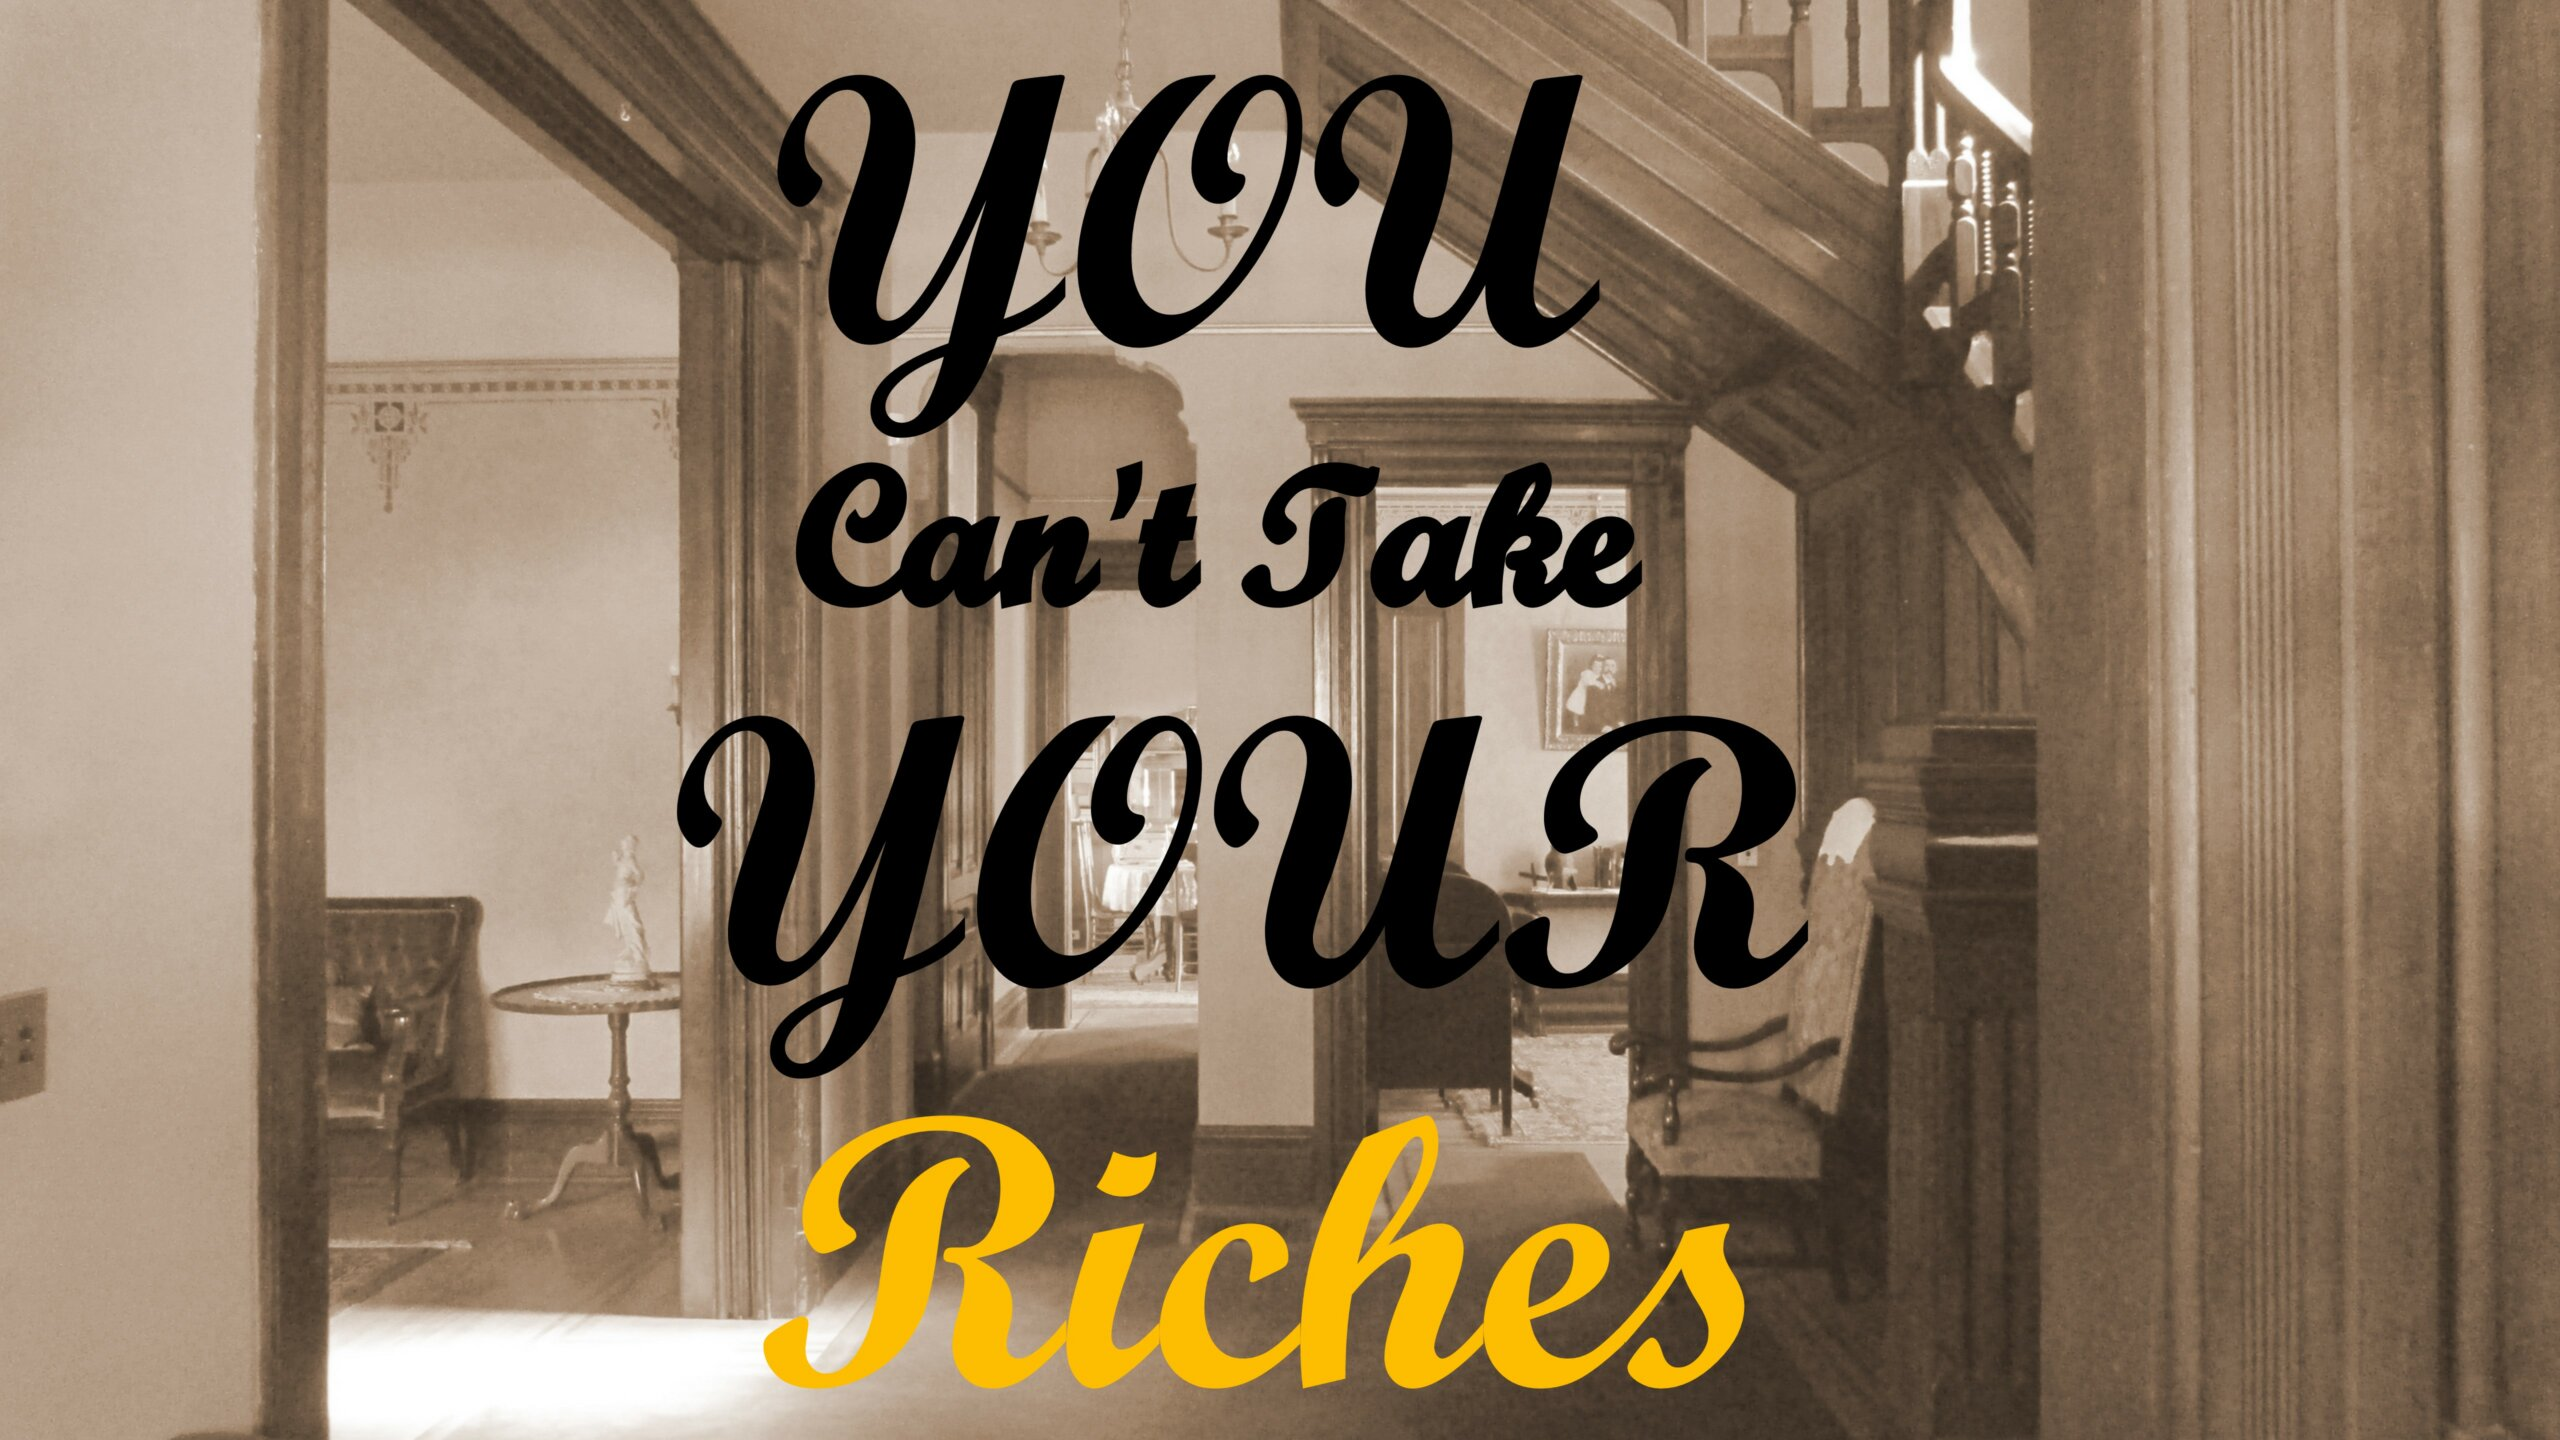 You Can't Take Your Riches